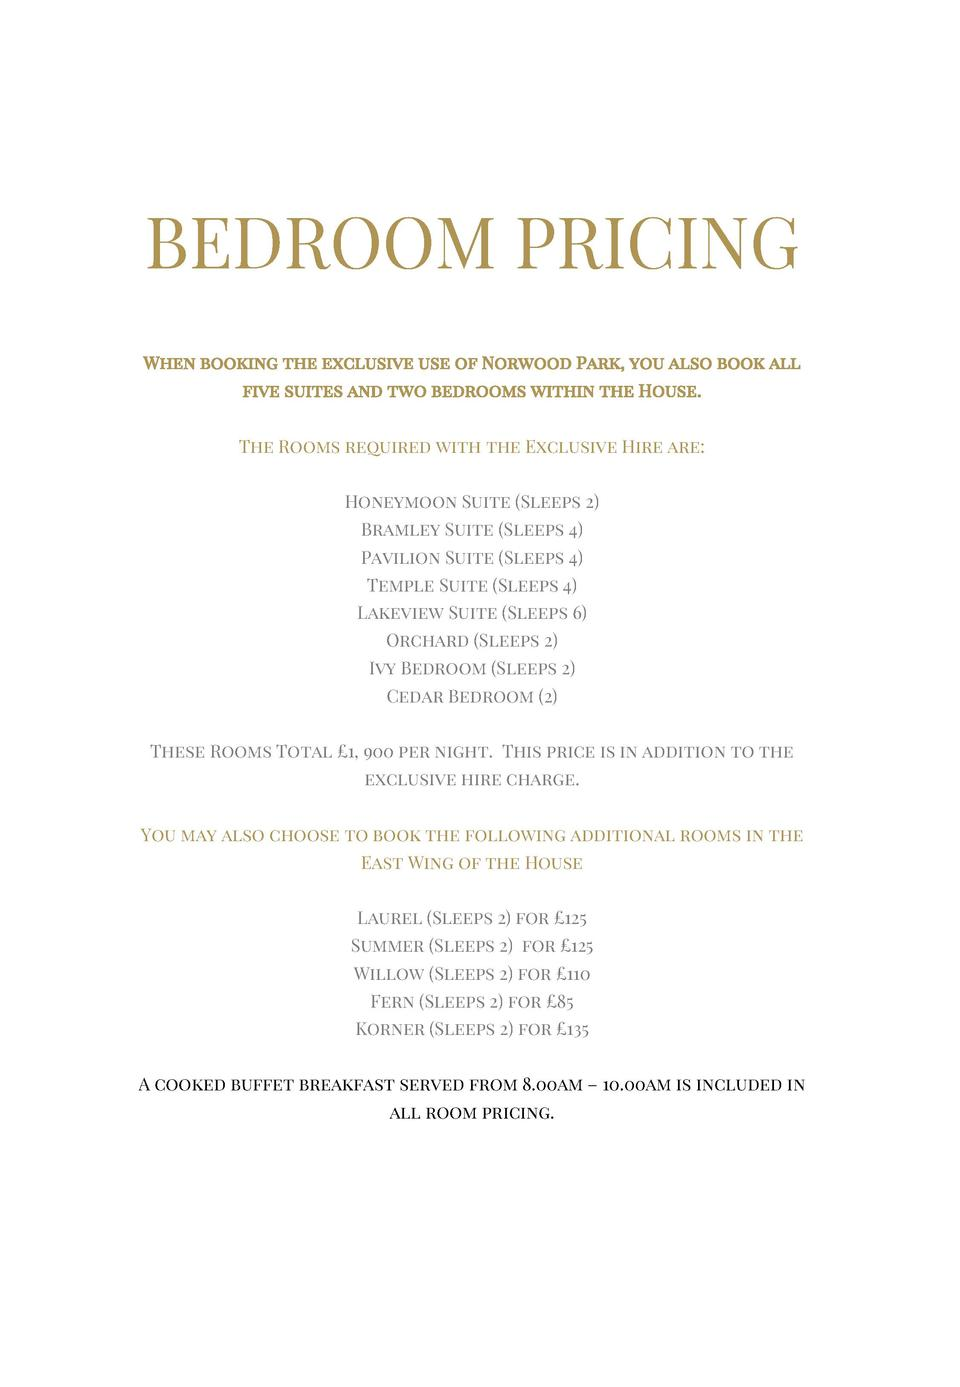 BEDROOM PRICING When booking the exclusive use of Norwood Park, you also book all five suites and two bedrooms within the ...